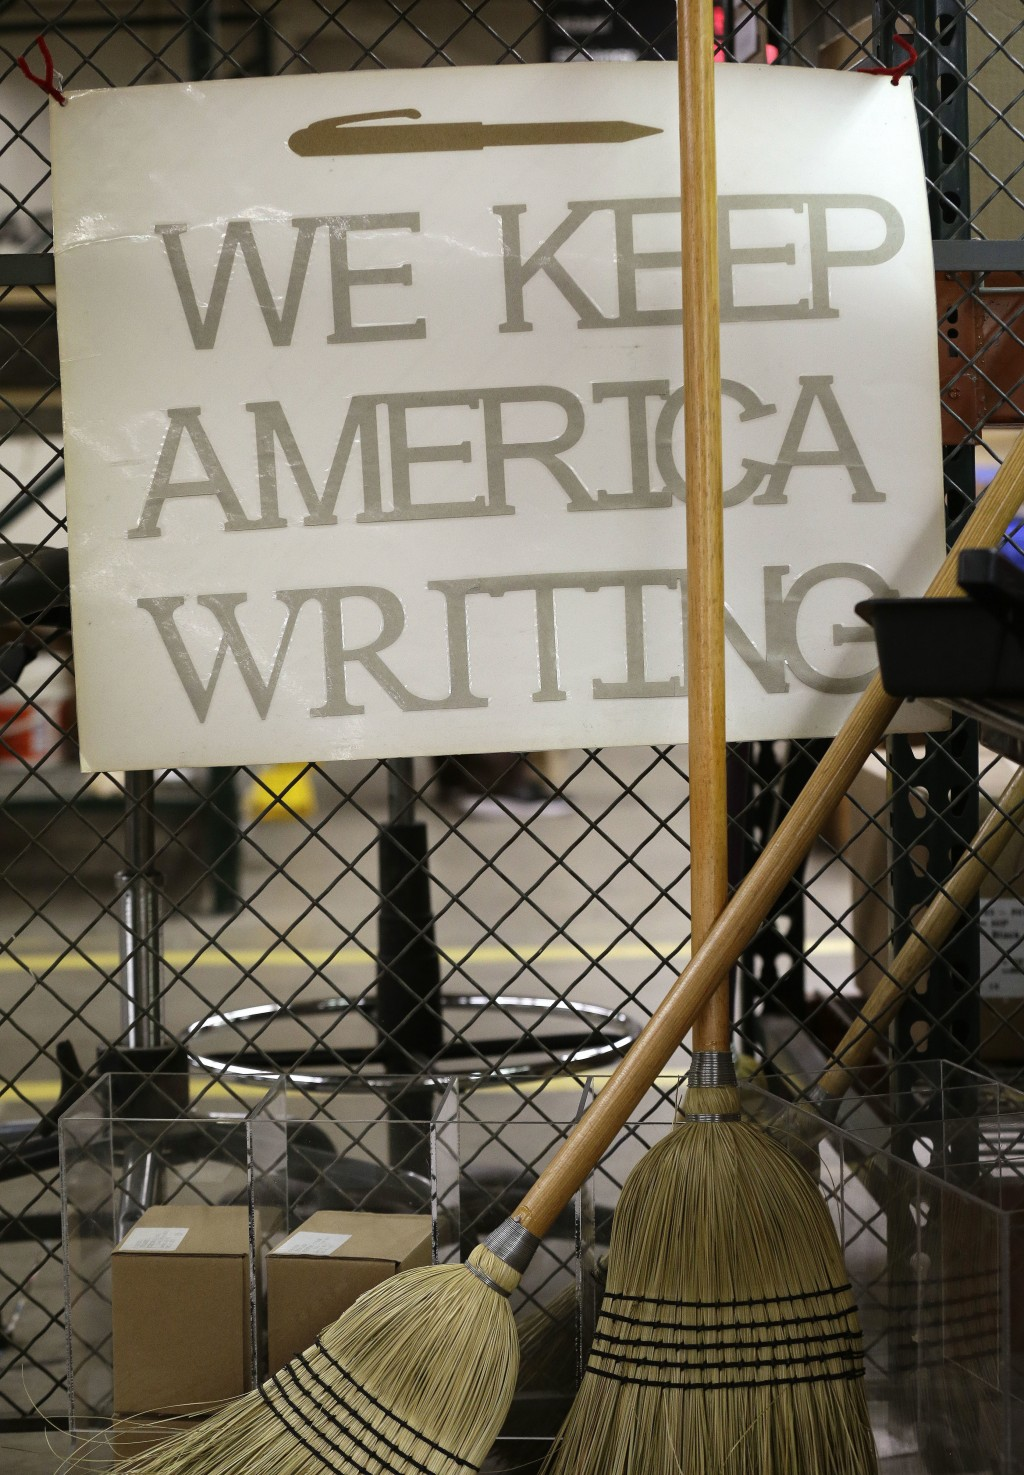 This Monday, April 16, 2018, photo shows a poster in the SKILCRAFT pen section at the Industries of the Blind in Greensboro, N.C. where pens are manuf...